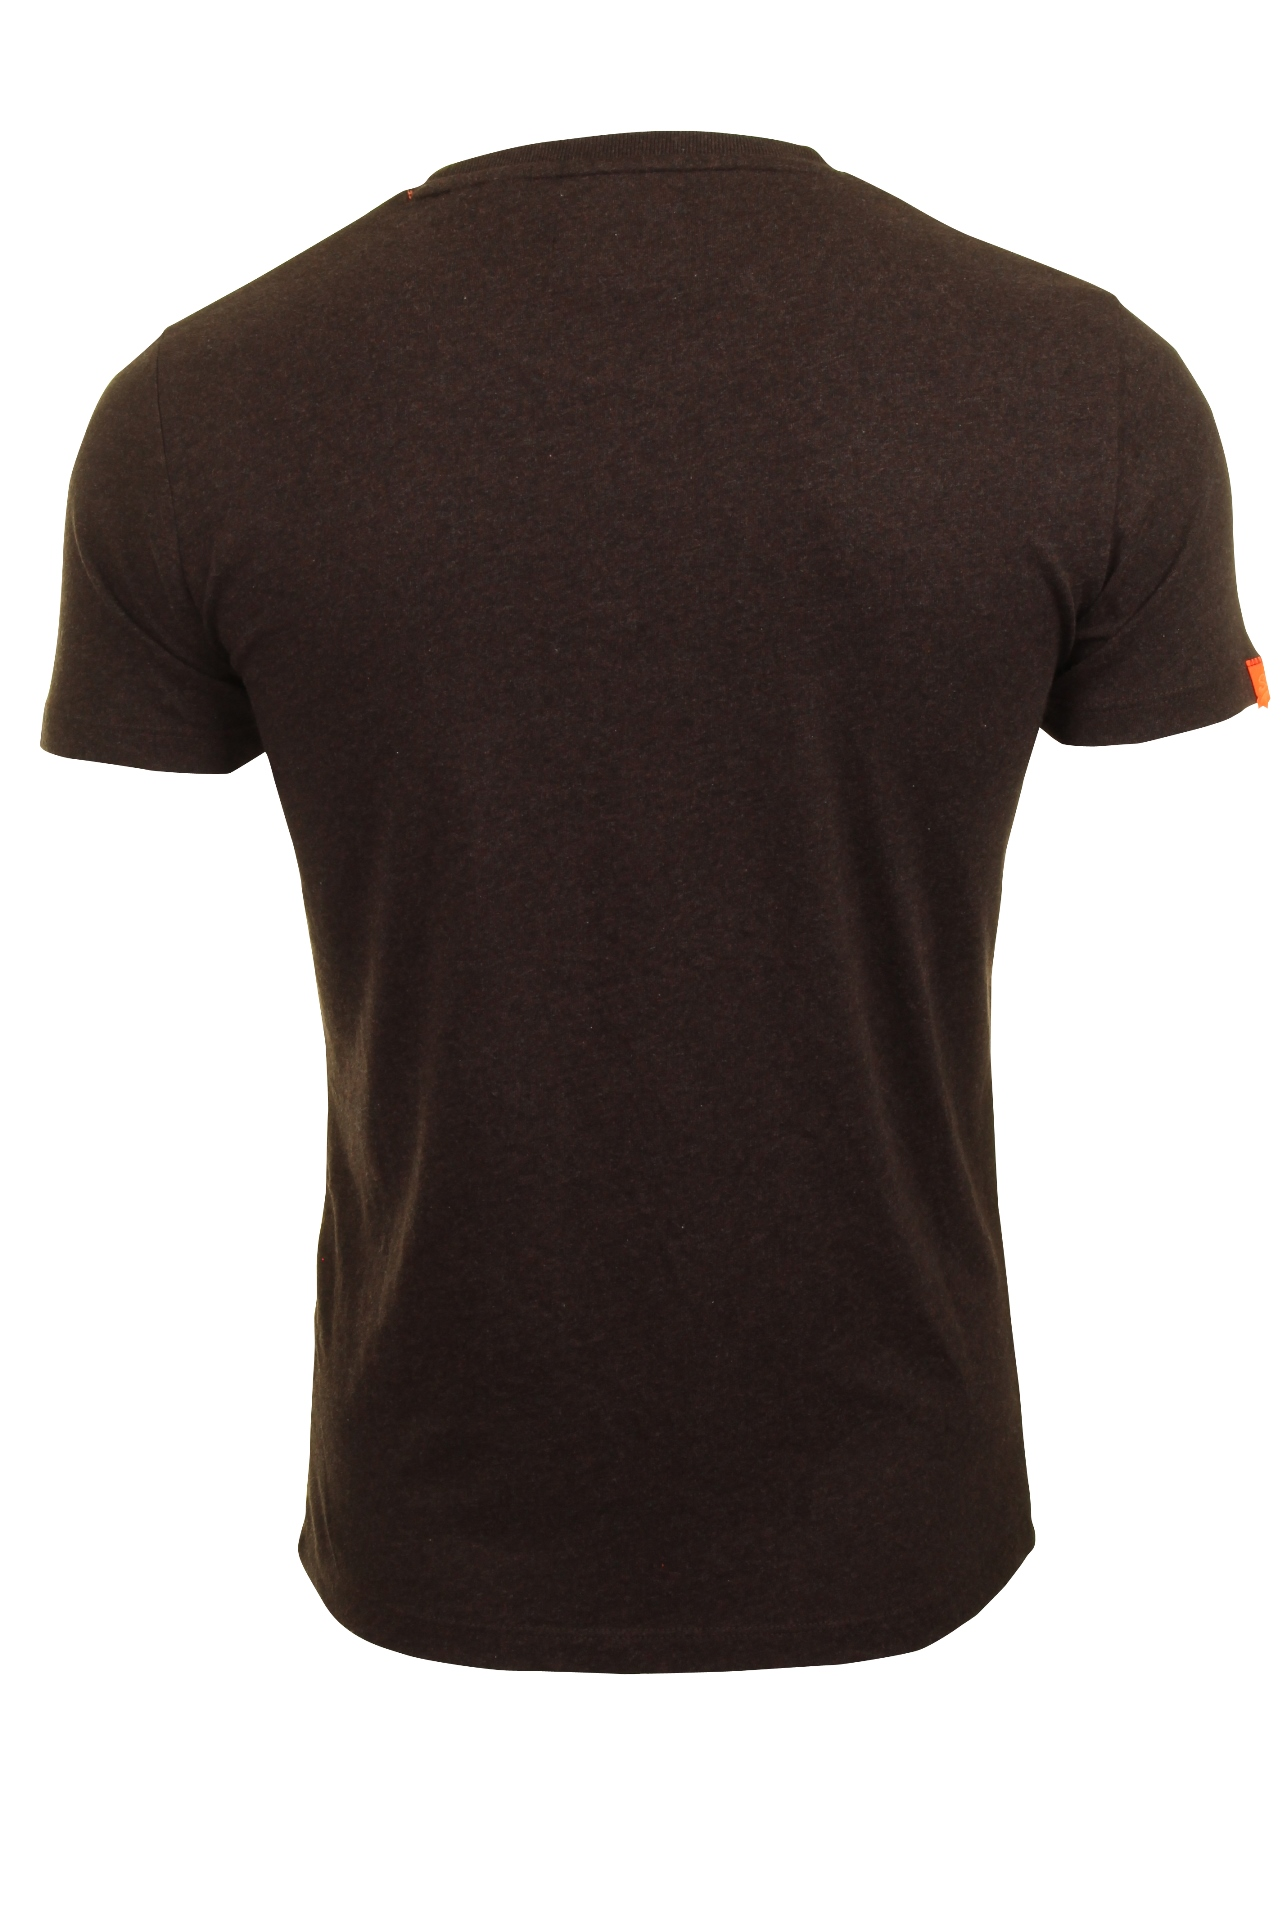 Superdry-Mens-T-Shirt-039-OL-Vintage-Embroidery-Tee-039-Short-Sleeved thumbnail 11